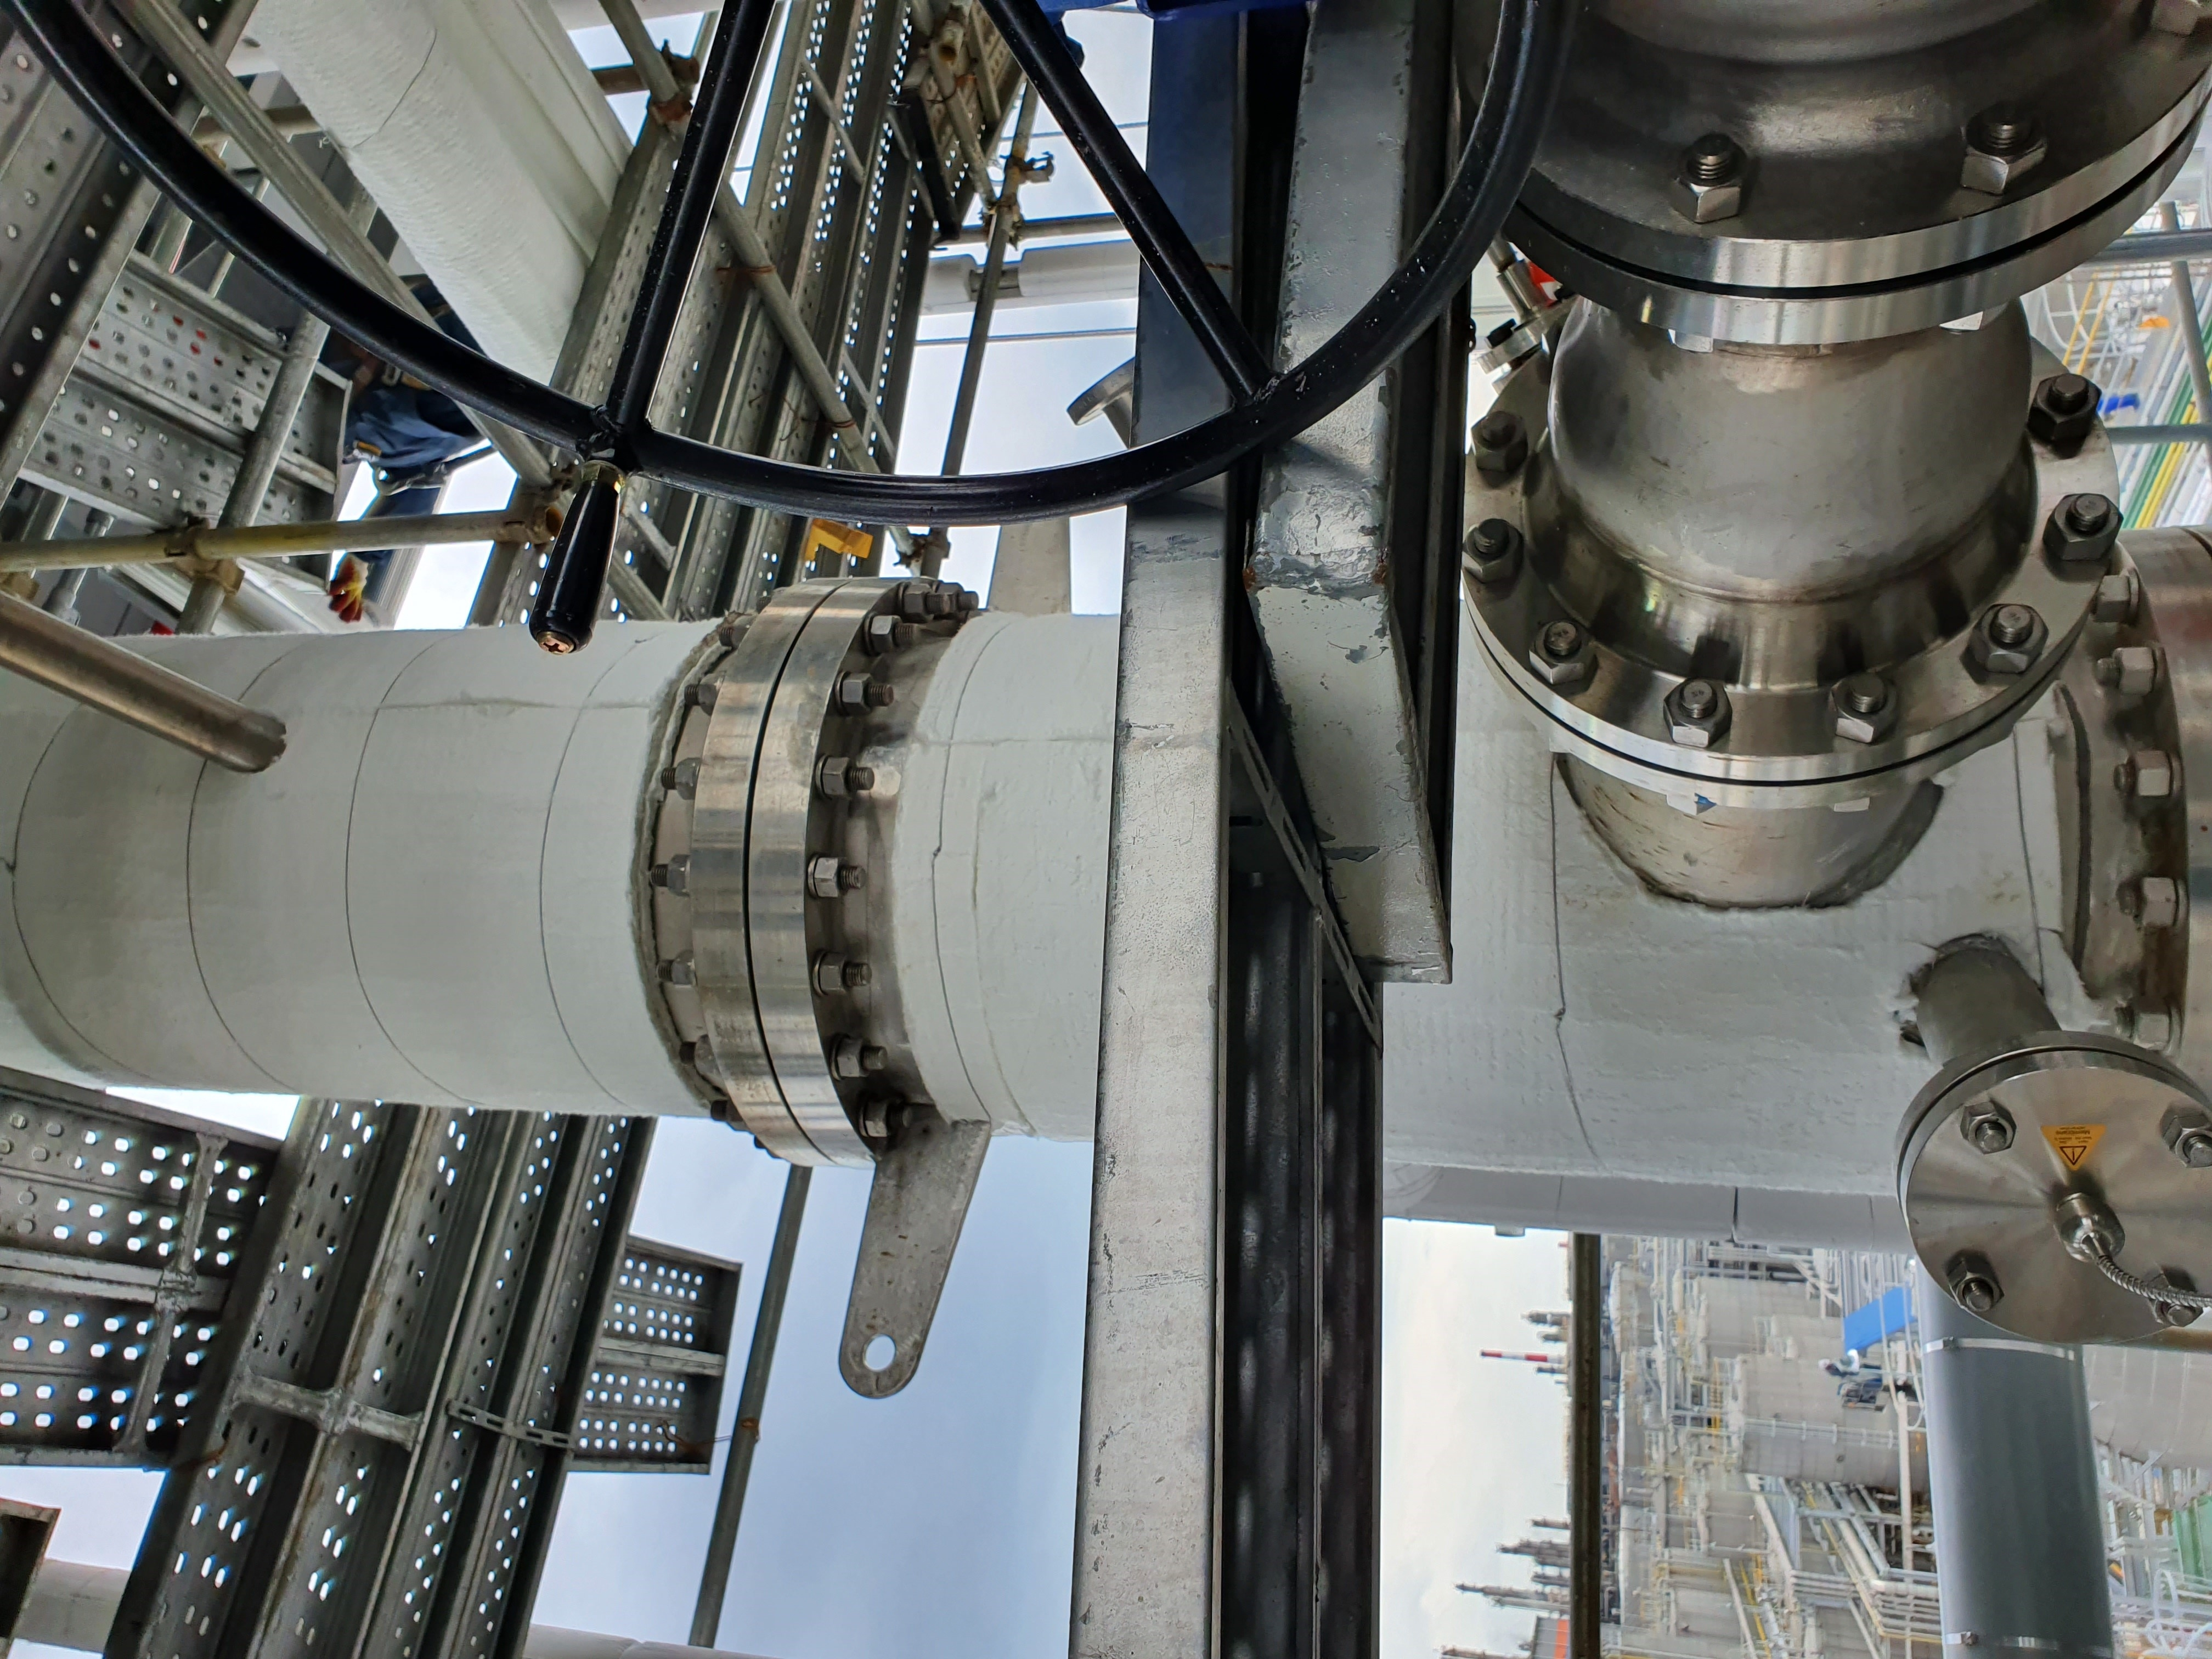 Caption - New generation of insulating material helps reduce 'corrosion under insulation' of equipment.jpg